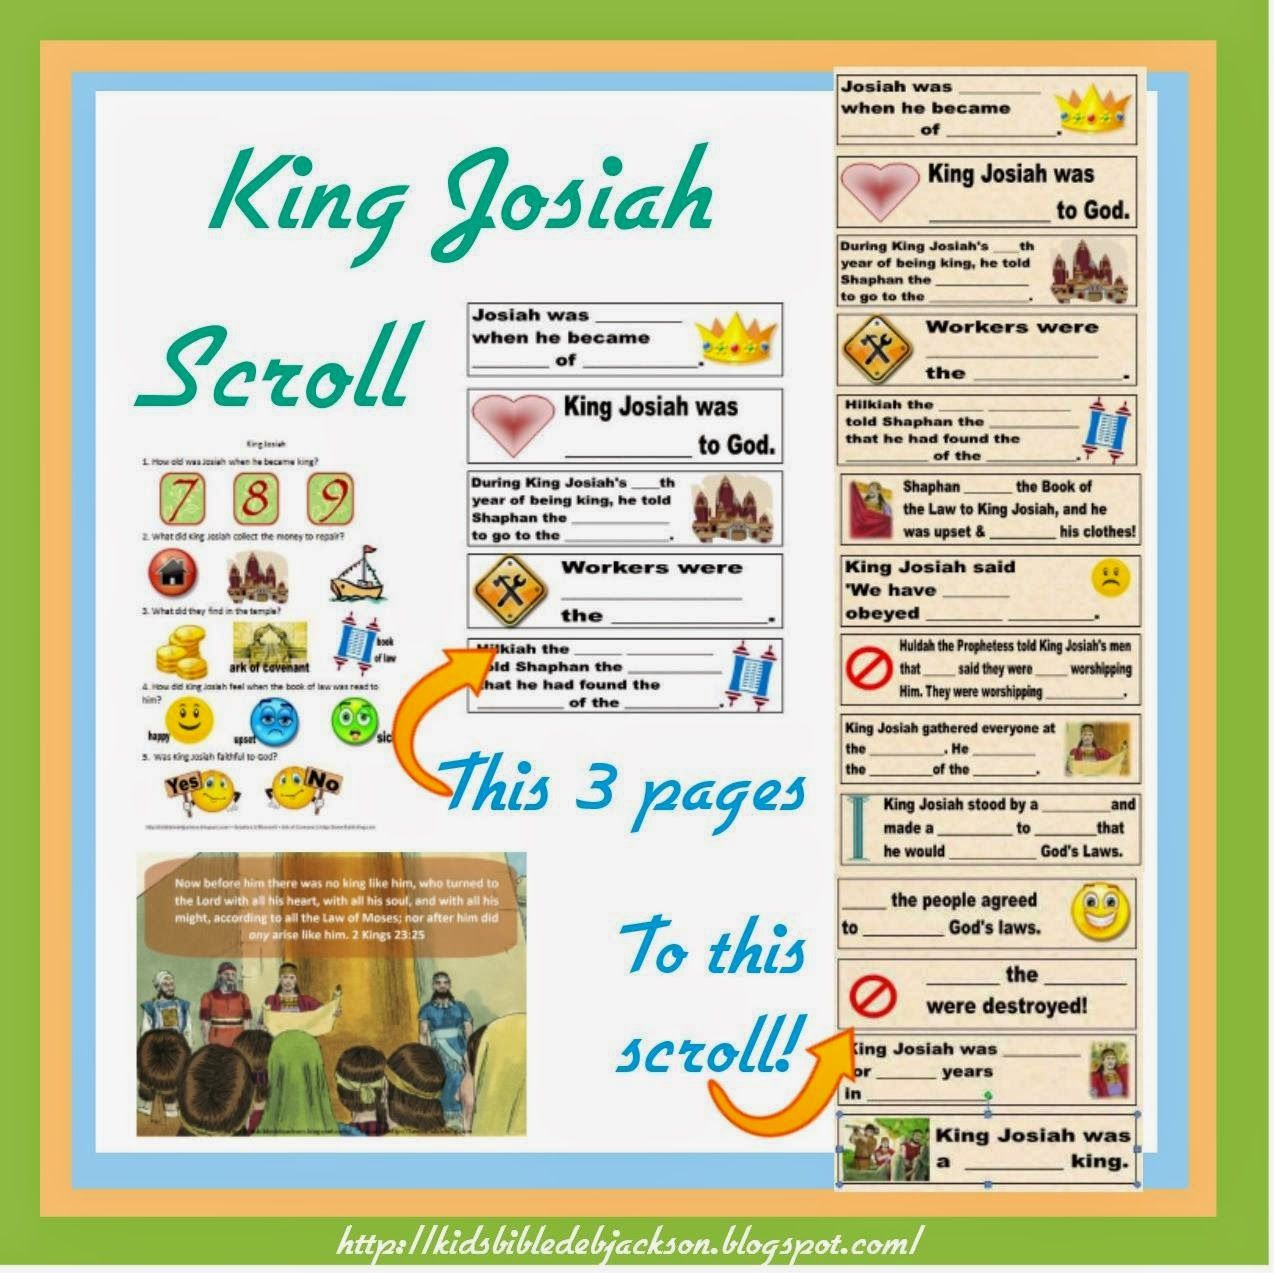 King Josiah Is Such A Fun Lesson For Kids There Are Some Really Great Things To Learn Too